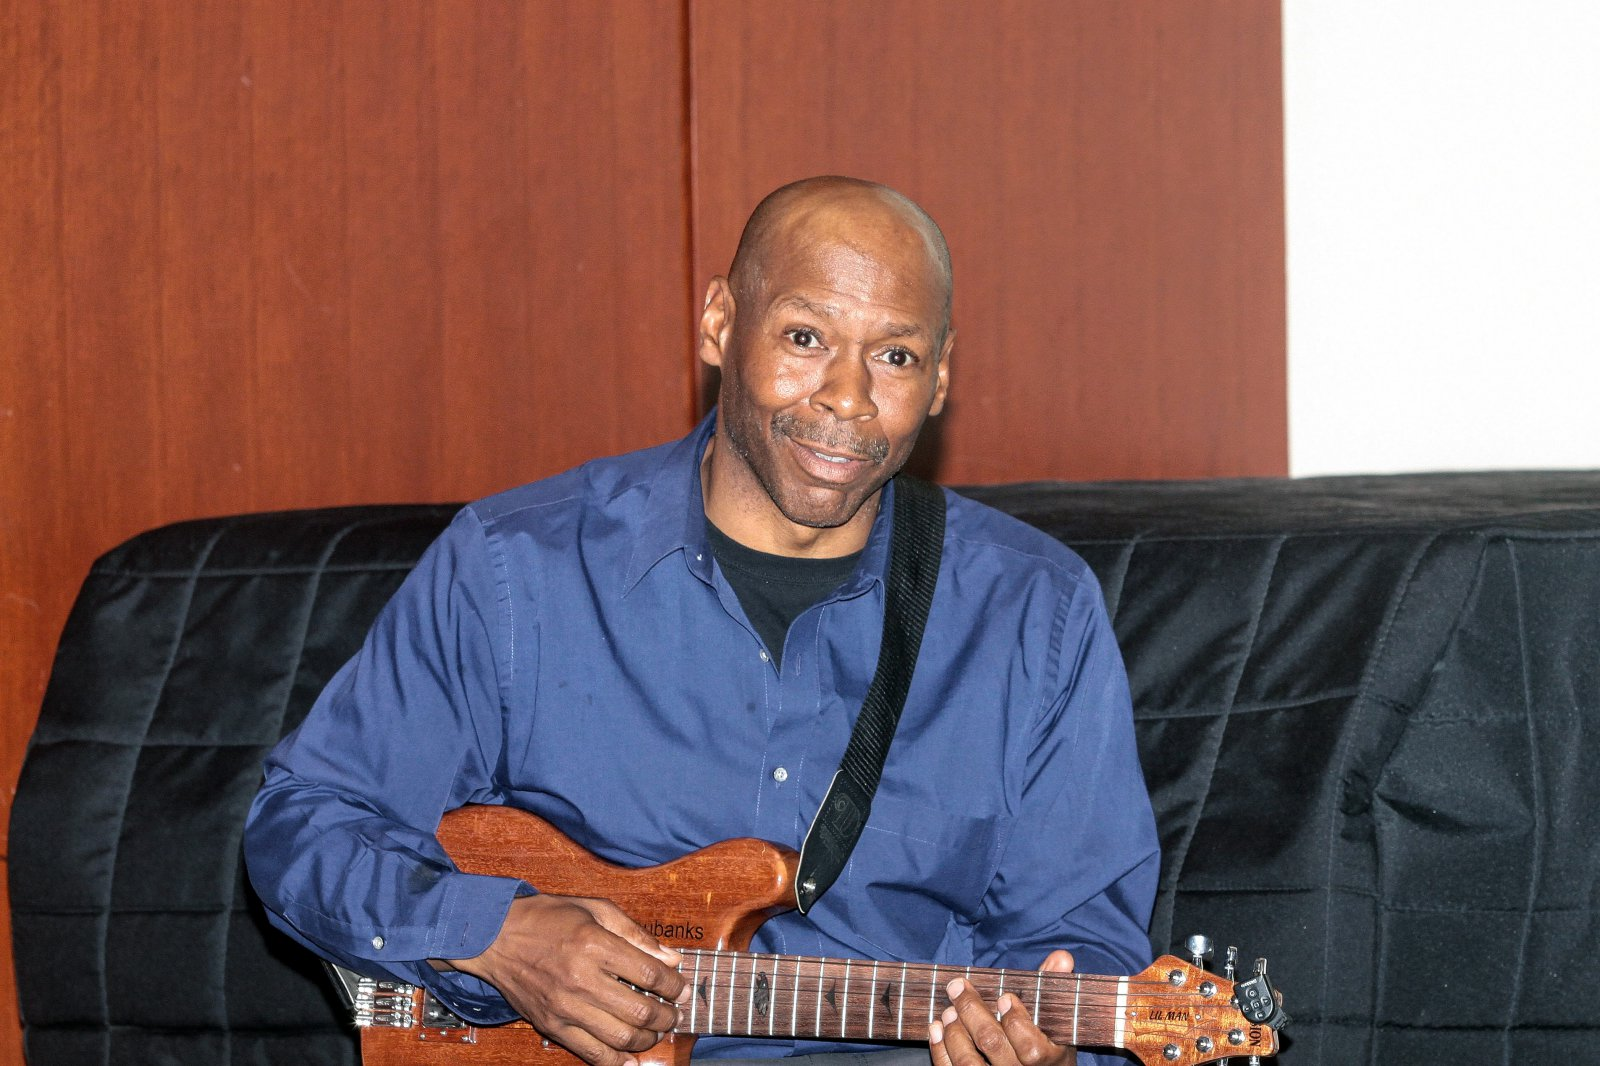 Festival headliner and former band leader of The Tonight Show, Kevin Eubanks